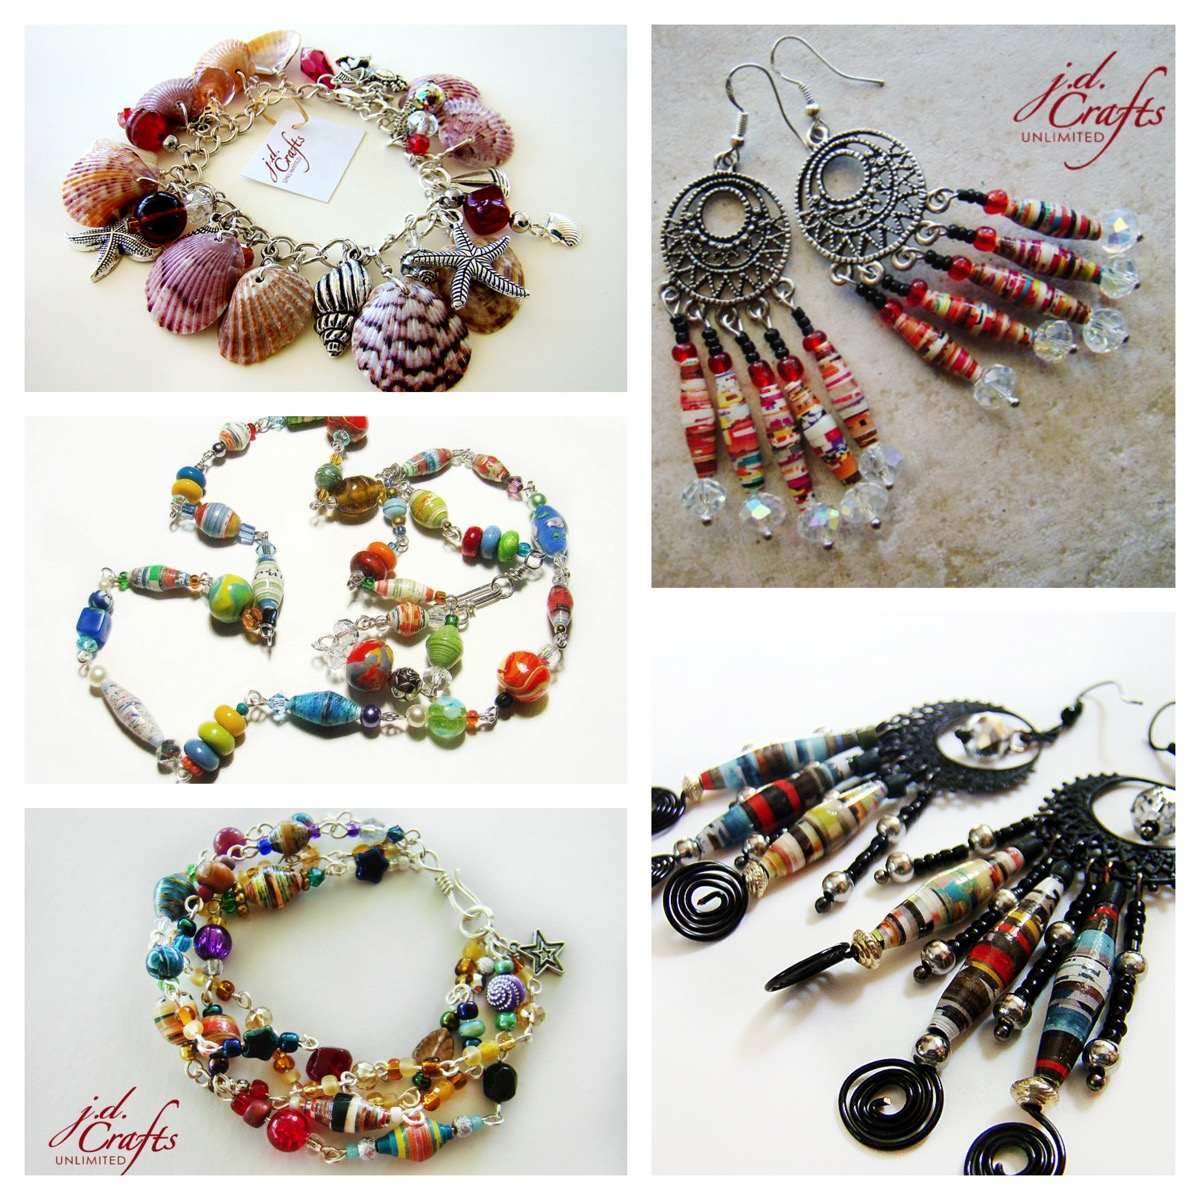 Jd Crafts unlimited colorful jewelry